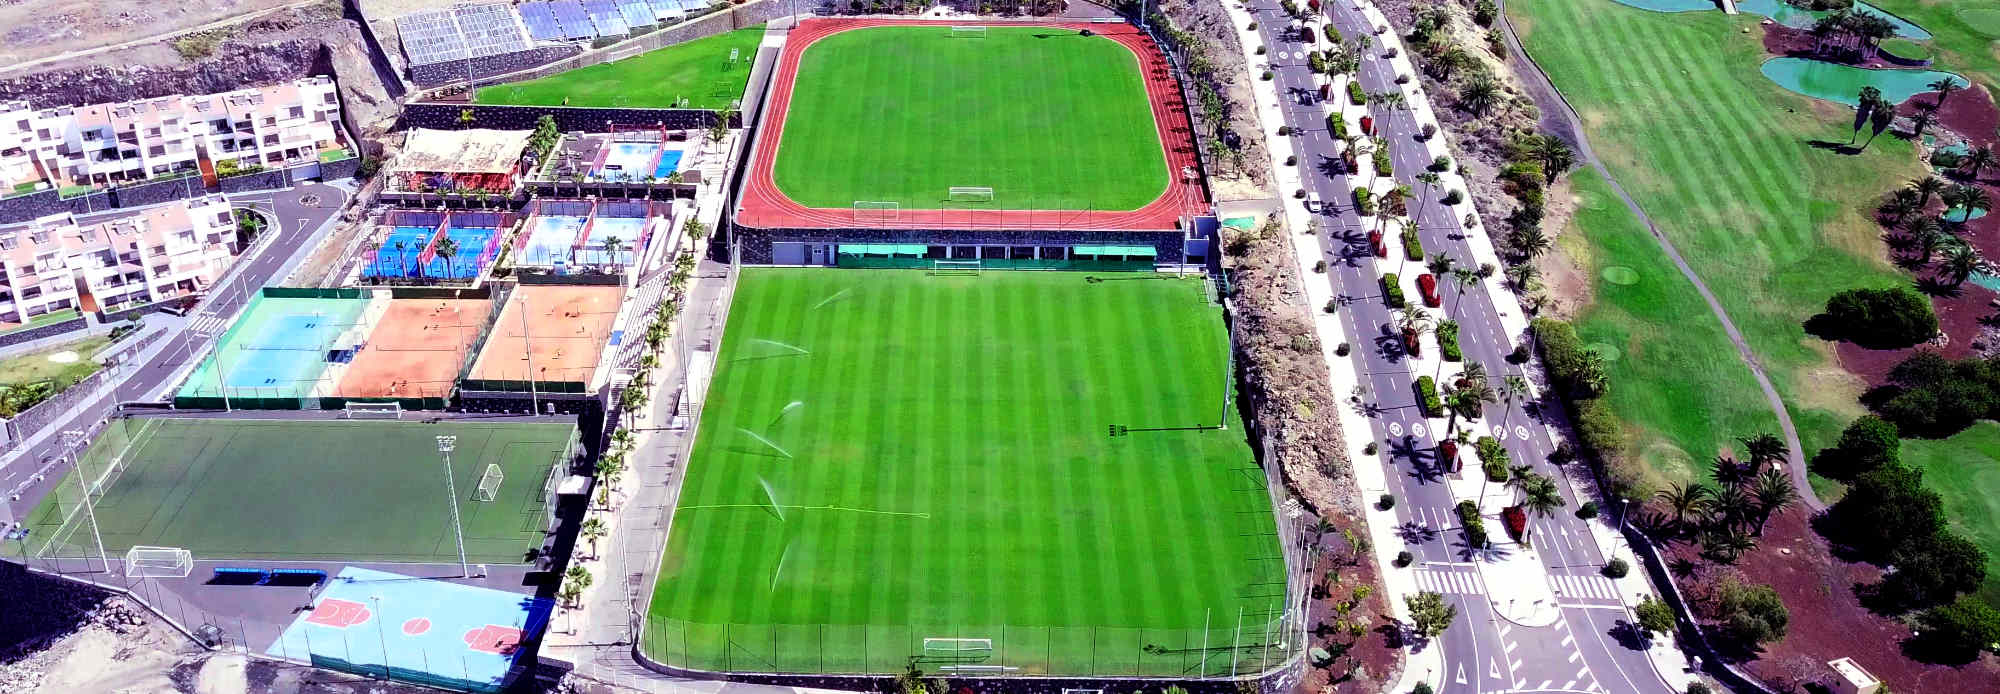 Arial view of world-class soccer pitches of Tenerife Top Training. The perfect place for a professional warm-weather football training camp in Spain